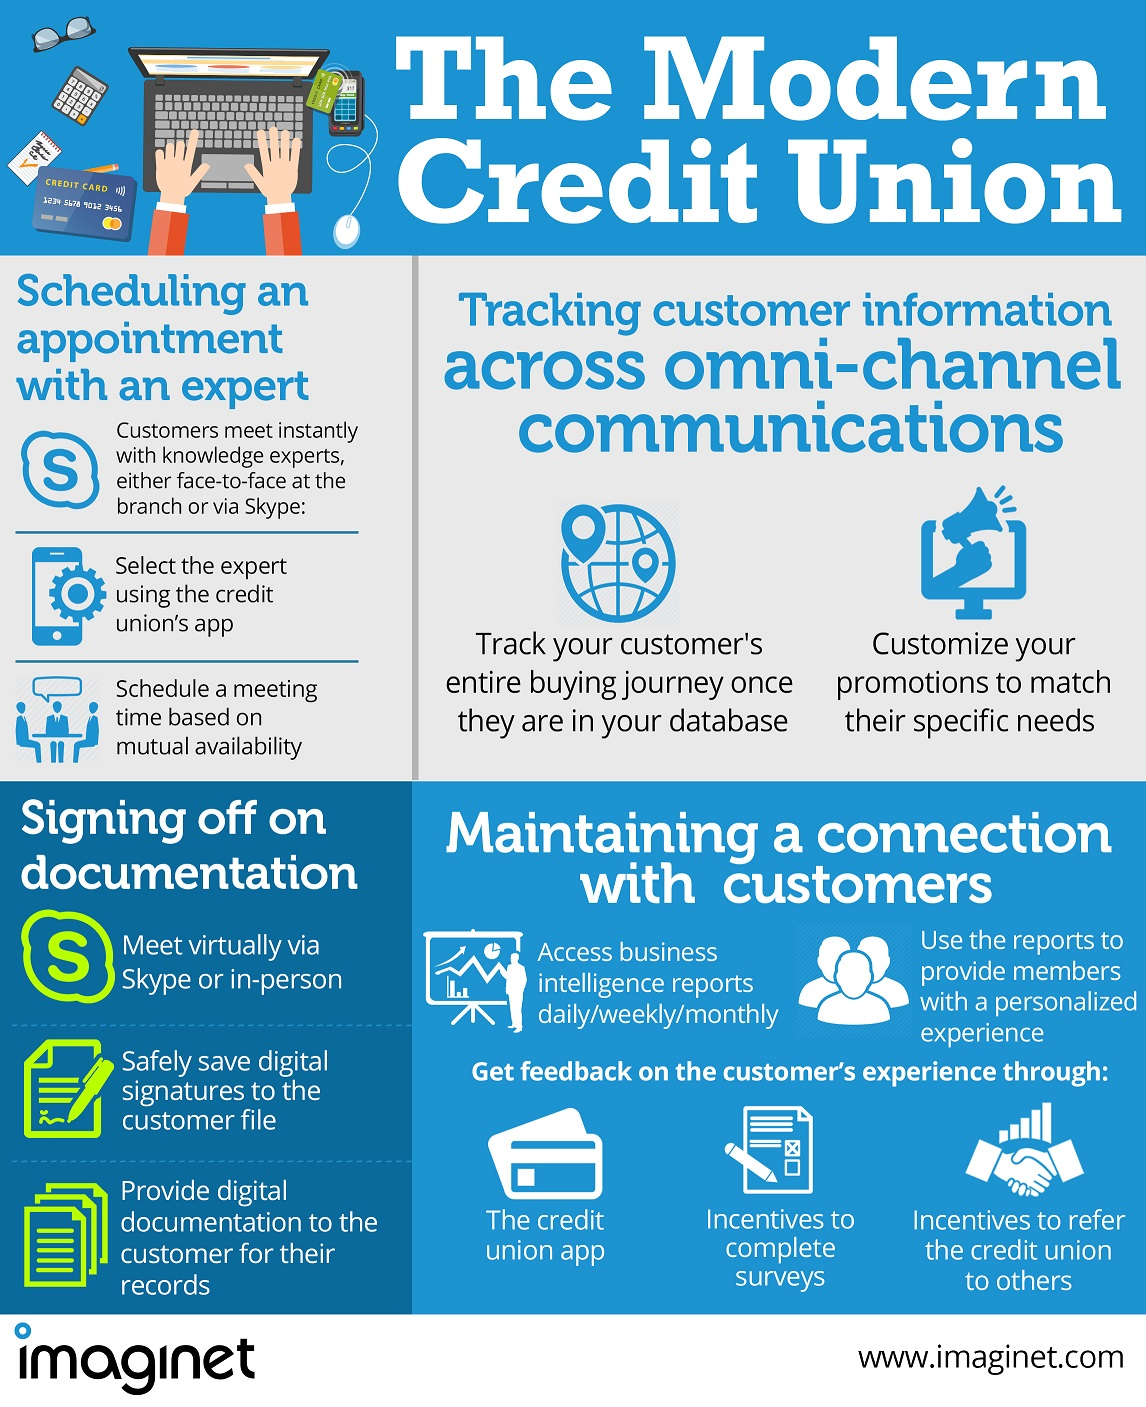 Imaginet_The-Modern-Credit-Union_ infographic